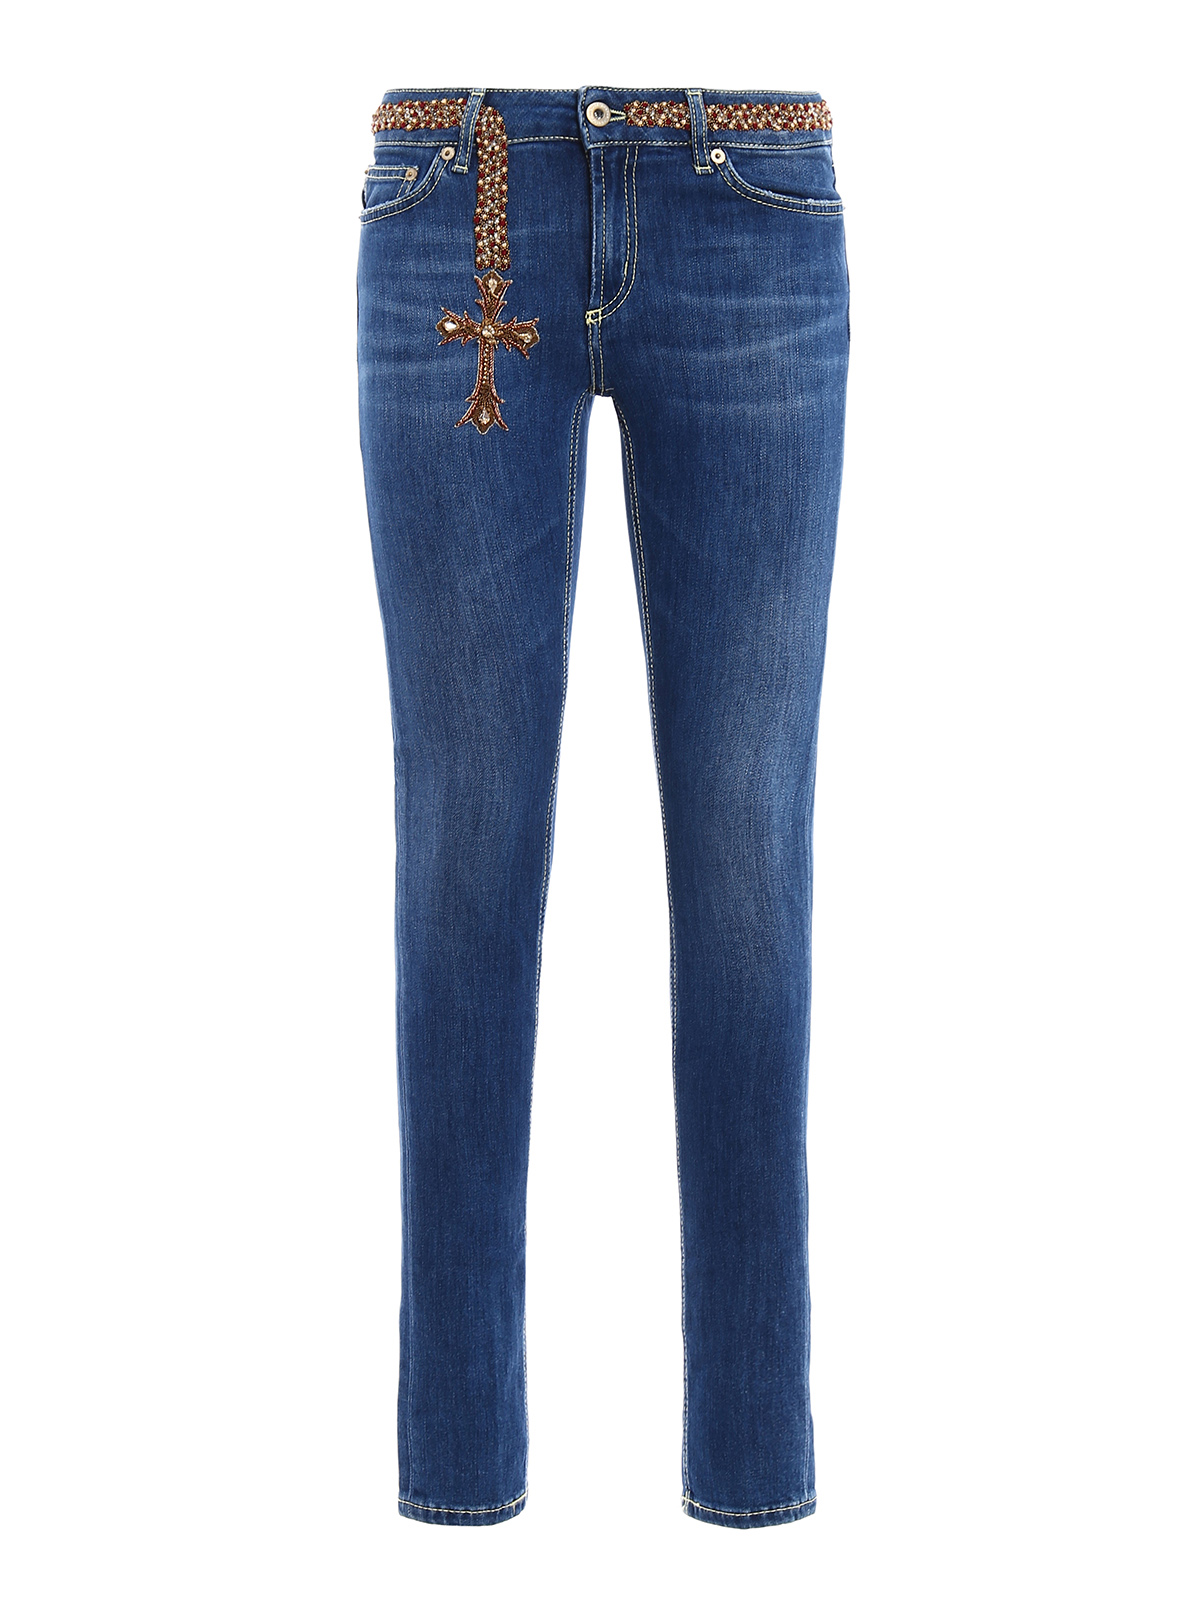 Shop magyc.cf to find an extensive collection of DG2 Jeans, Diane Gilman's high-quality, fashionable jean collection. Start shopping today to find your new favorite DG2 jeans.